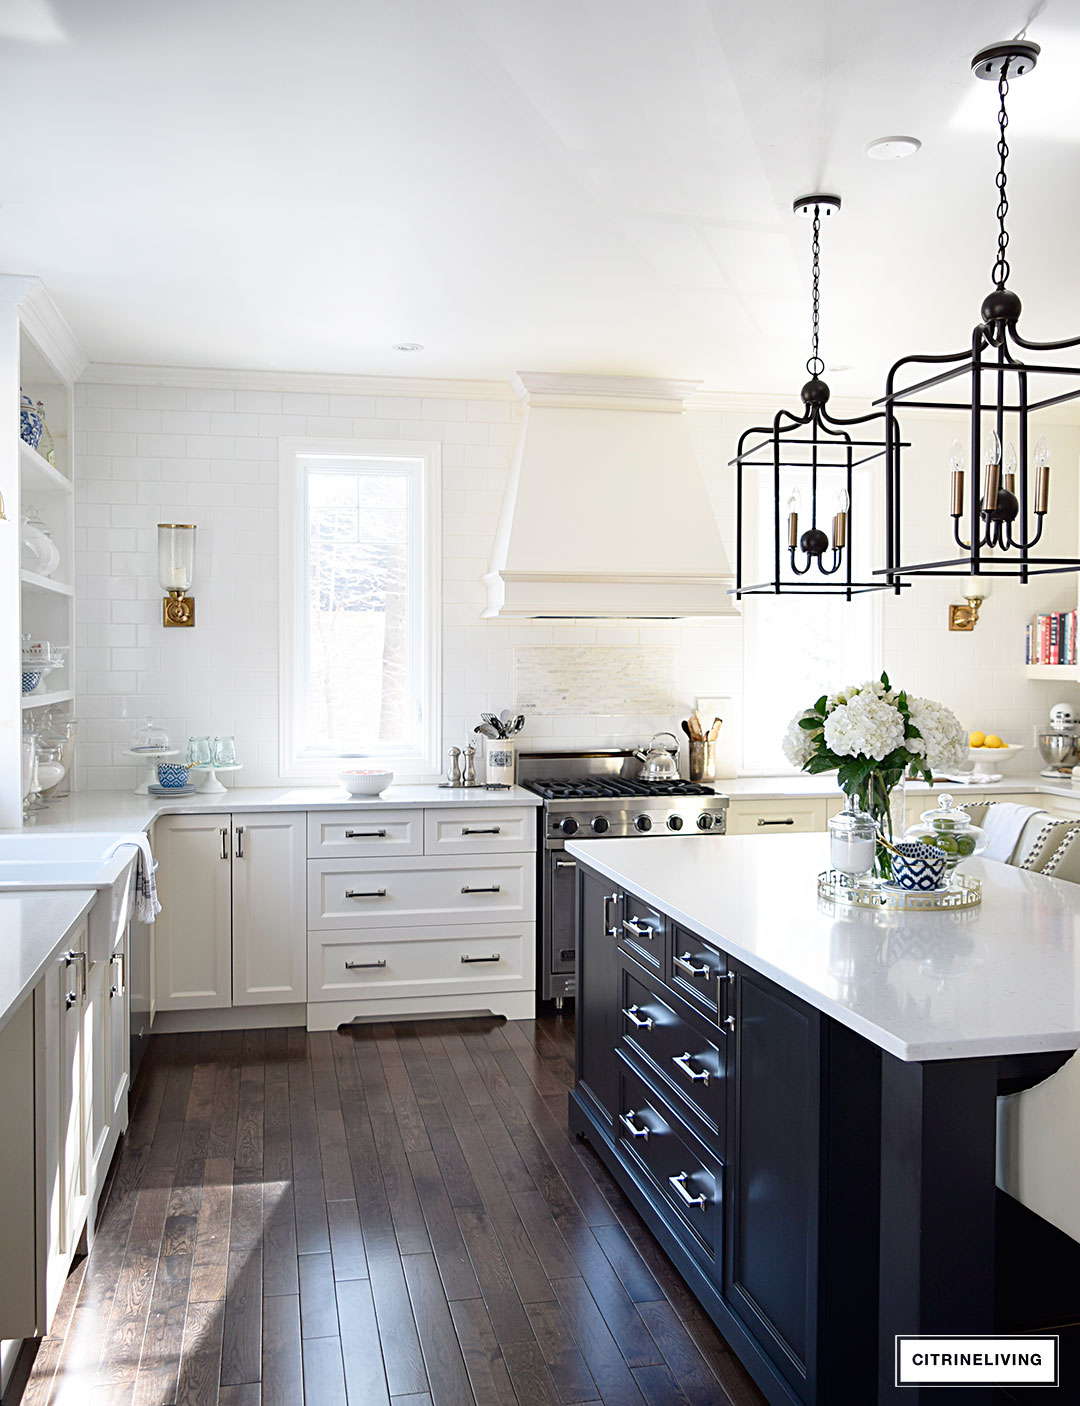 An open concept kitchen with counter to ceiling subway tile, no upper cabinets and mixed metals creates a unique and personal look.